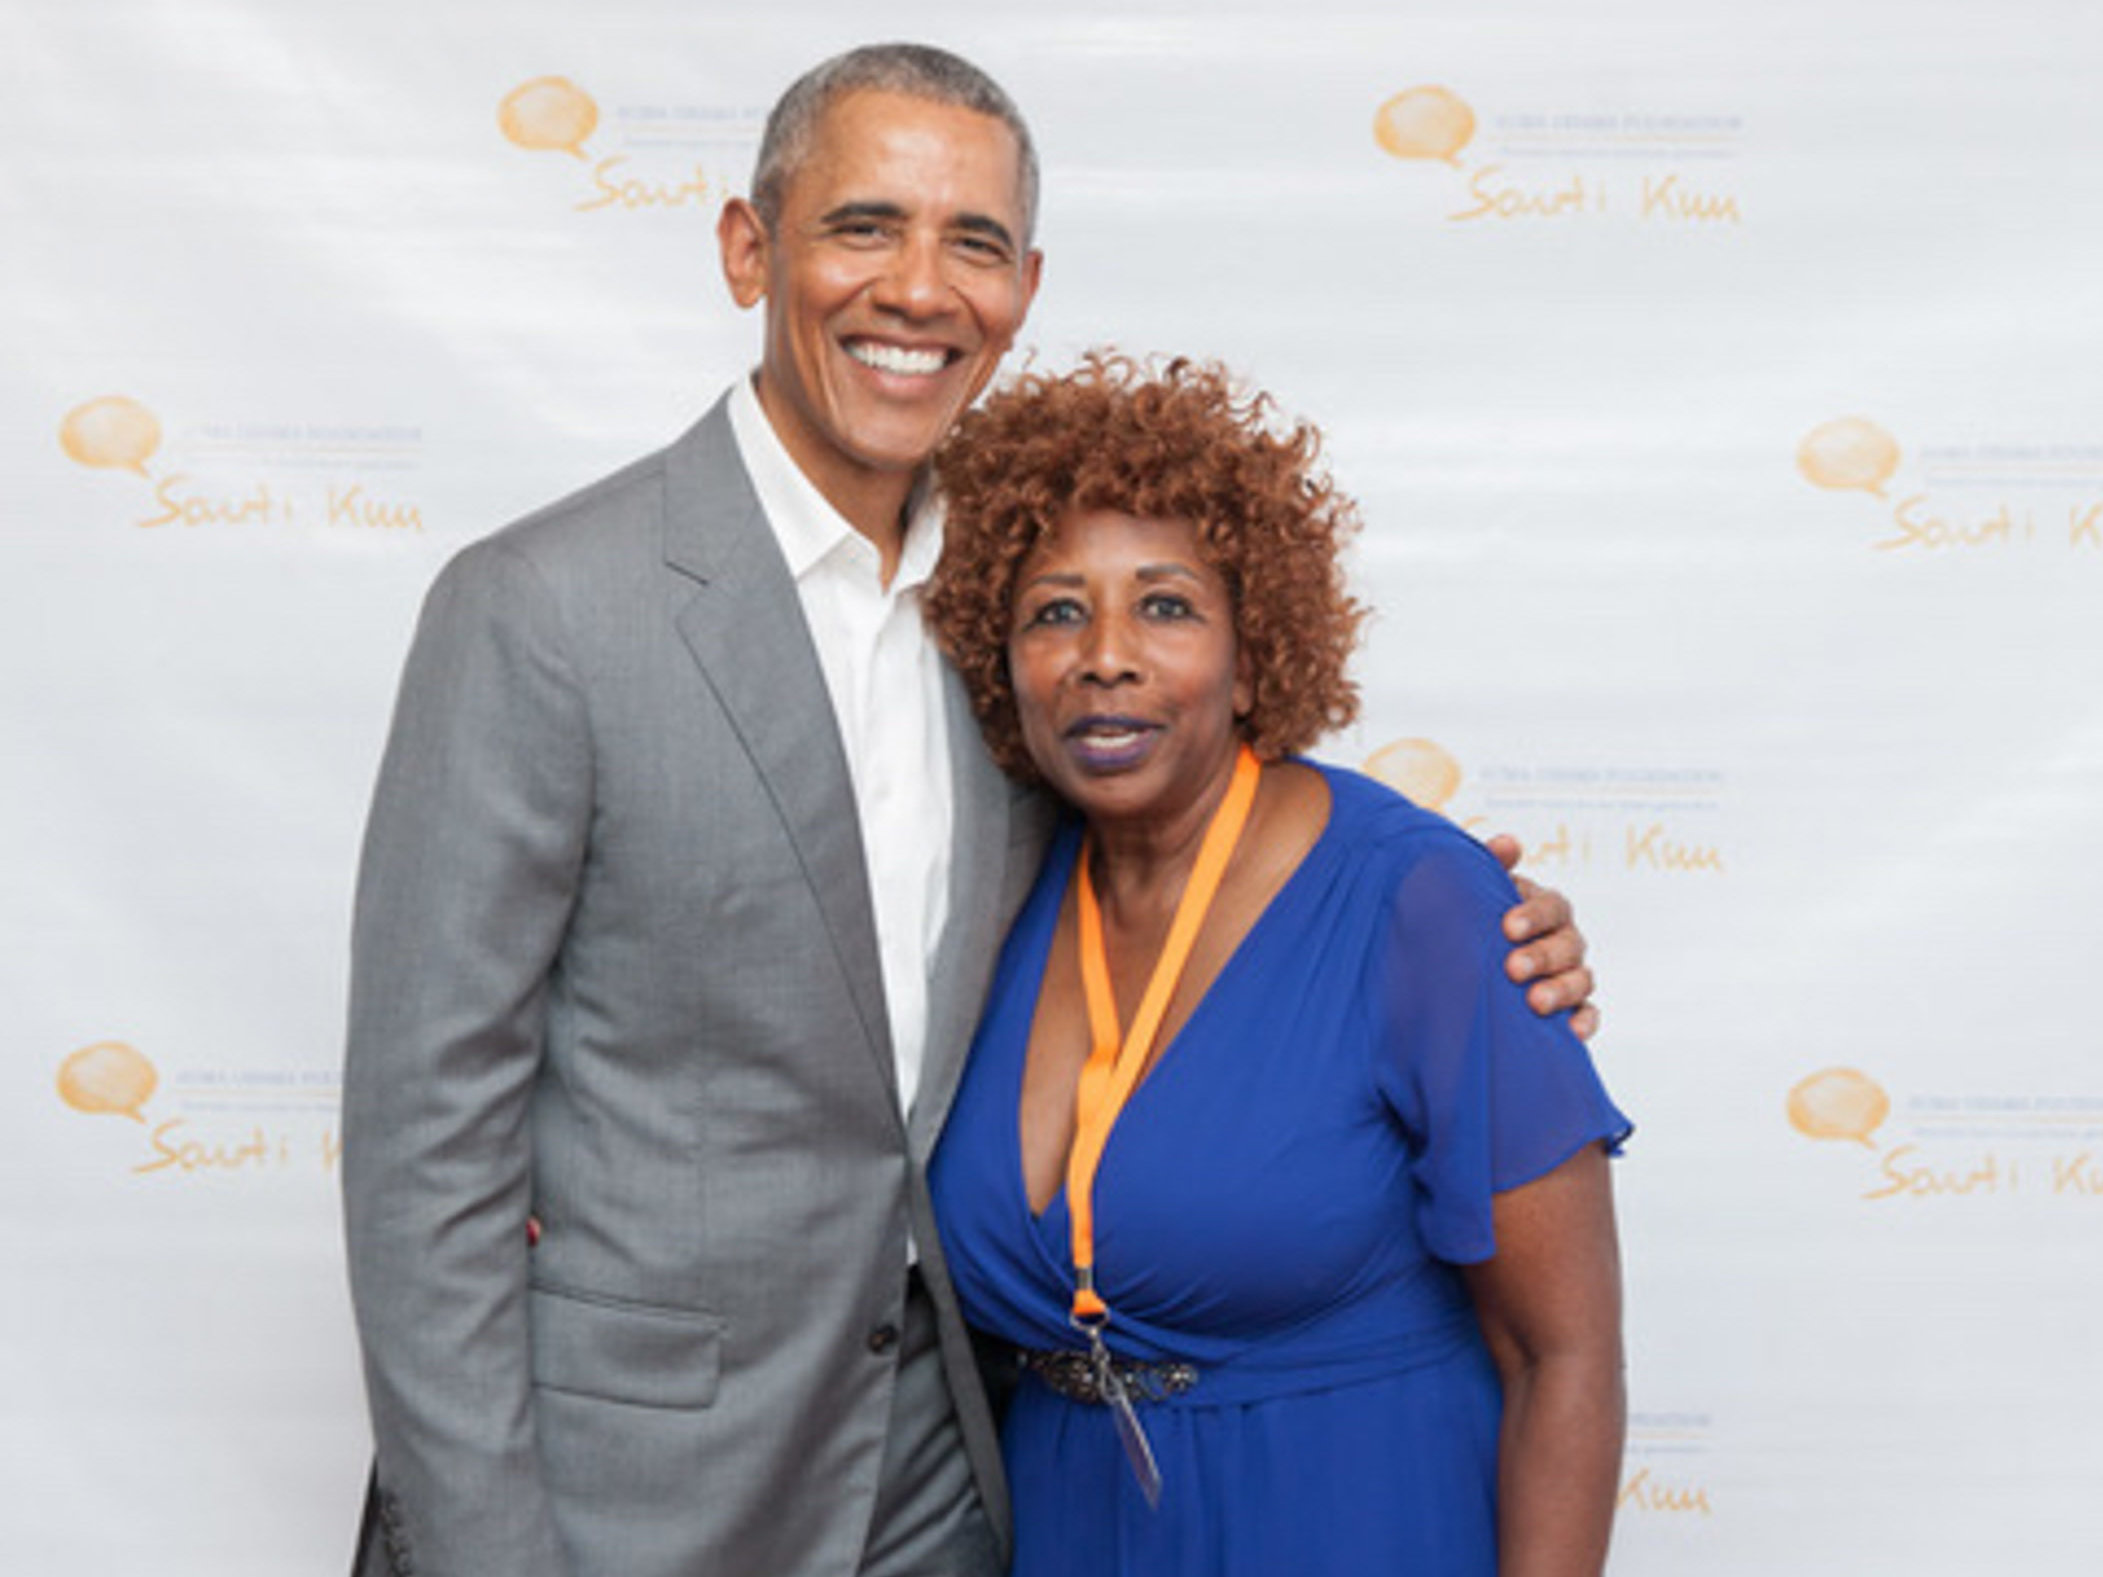 Asha Noppeney mit Barack Obama